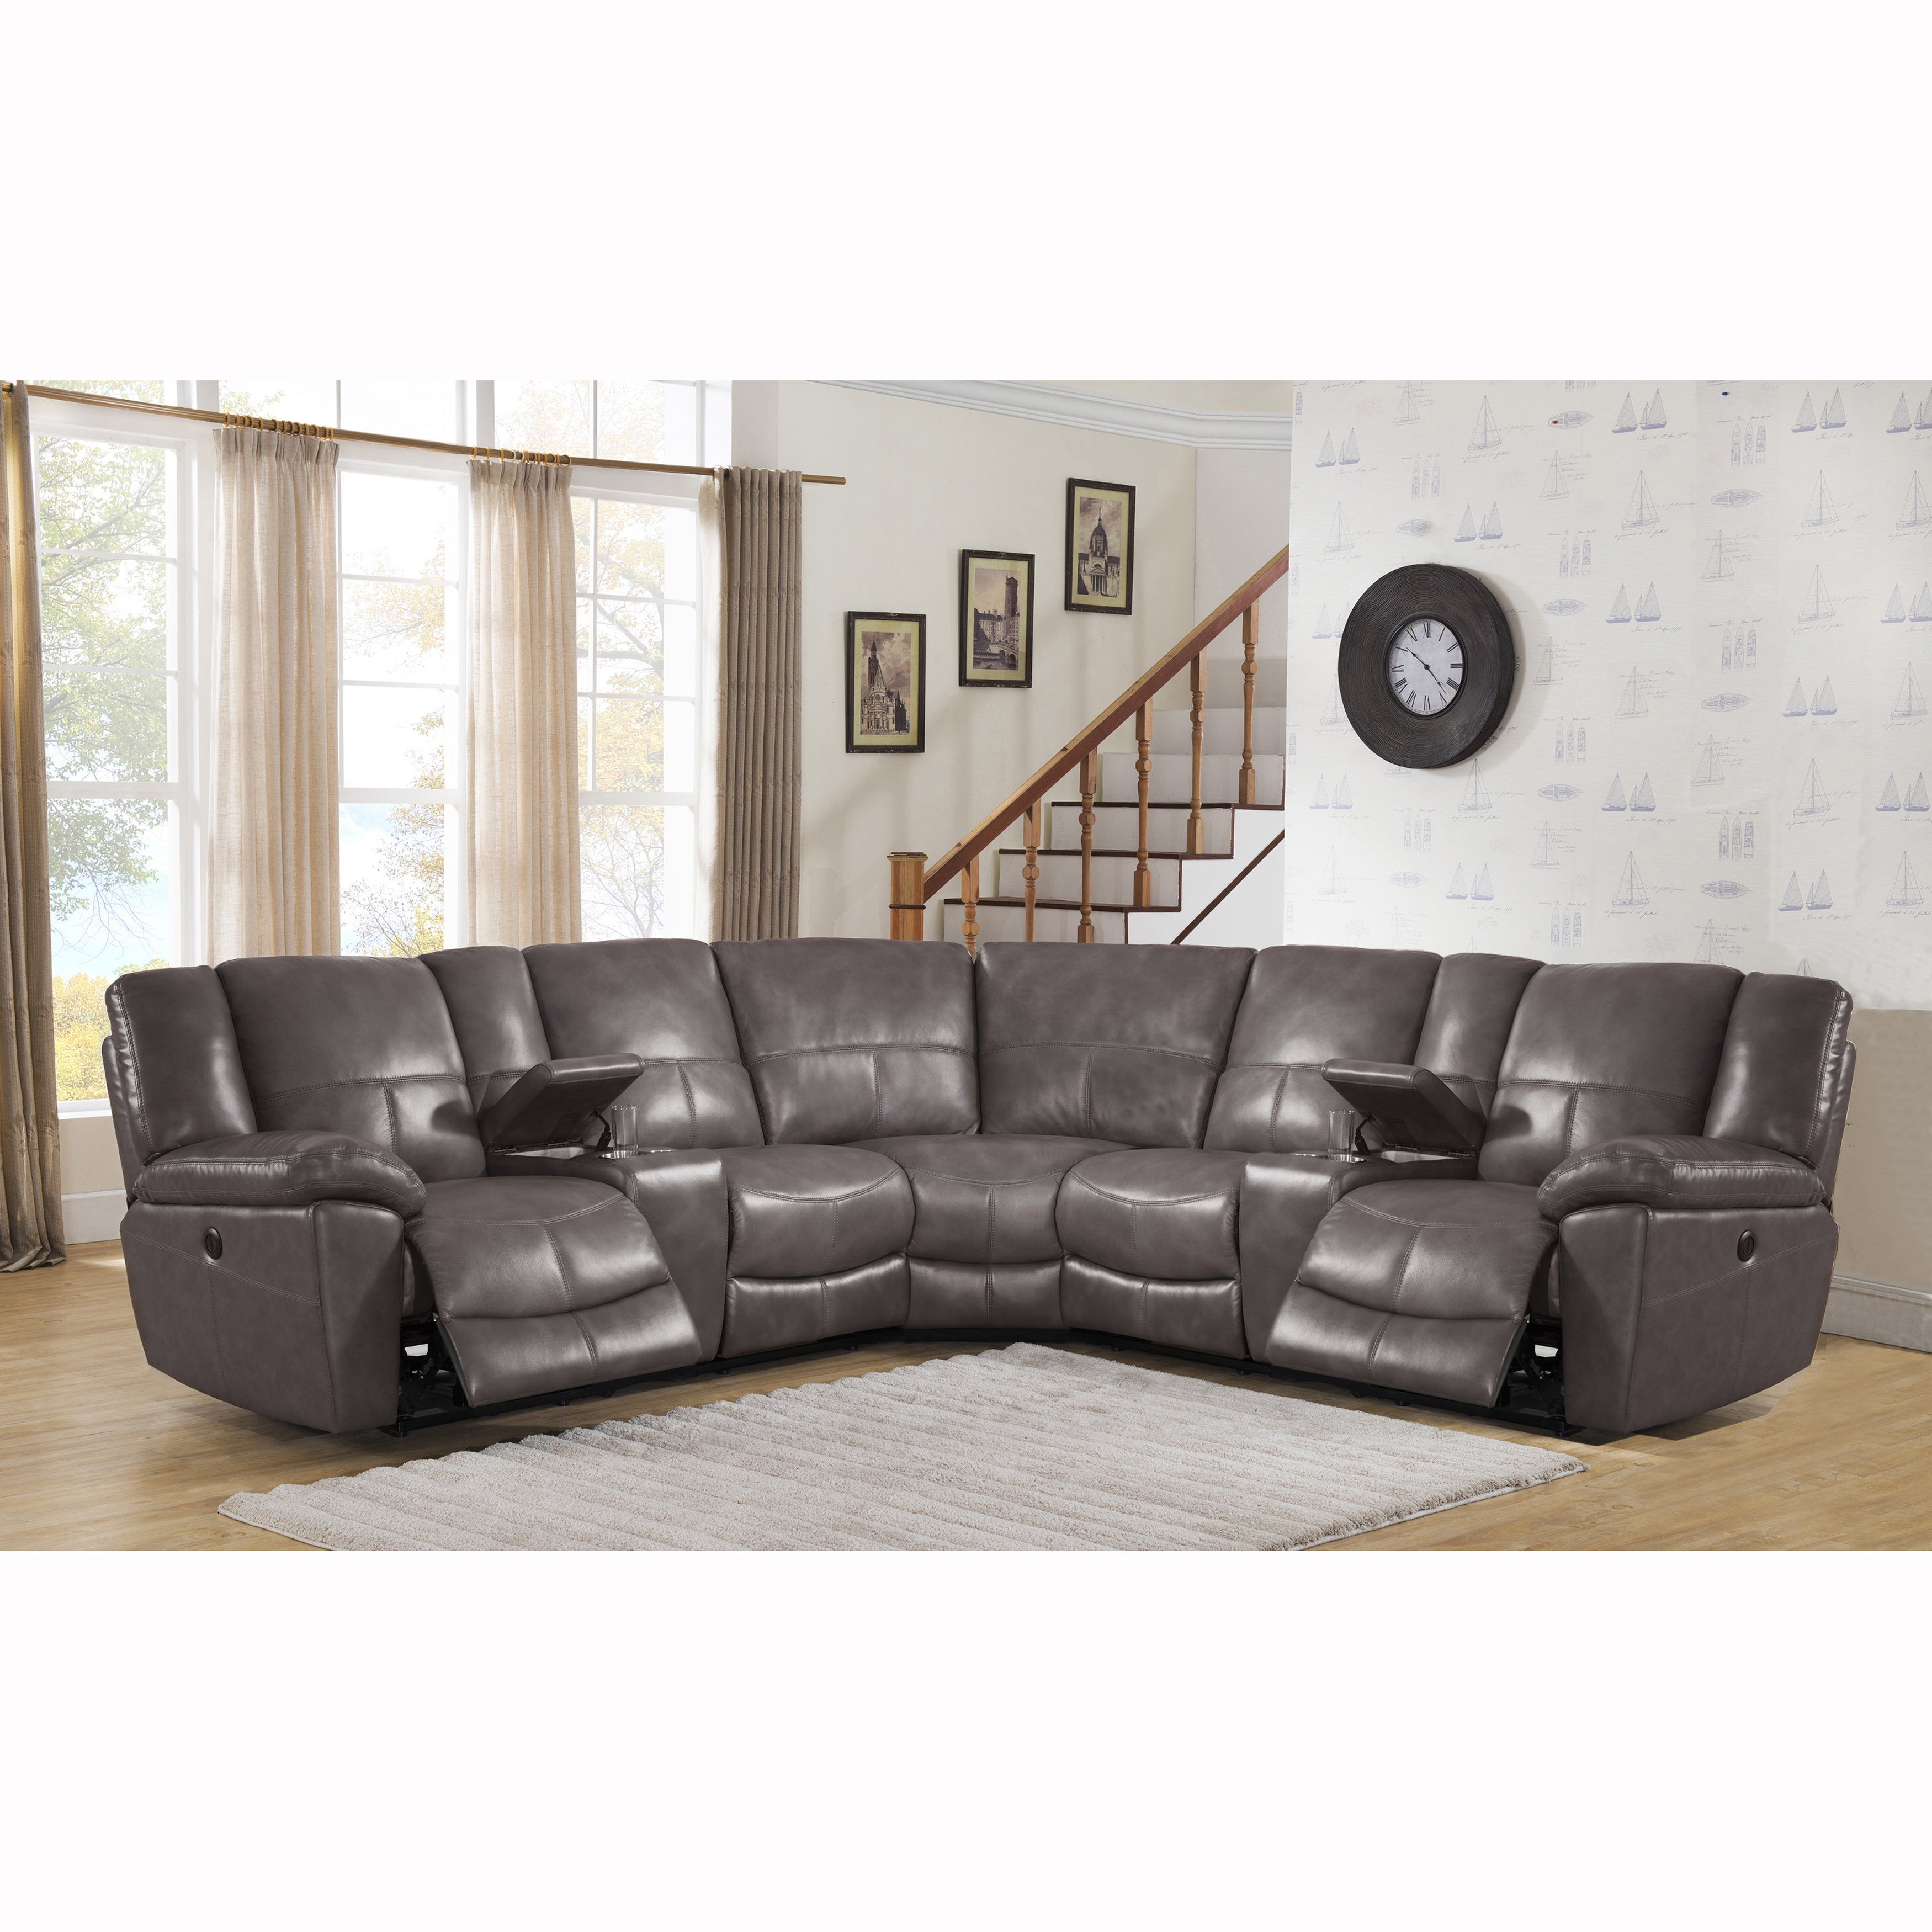 tahoe premium top grain grey leather power reclining sectional sofa ebay. Black Bedroom Furniture Sets. Home Design Ideas